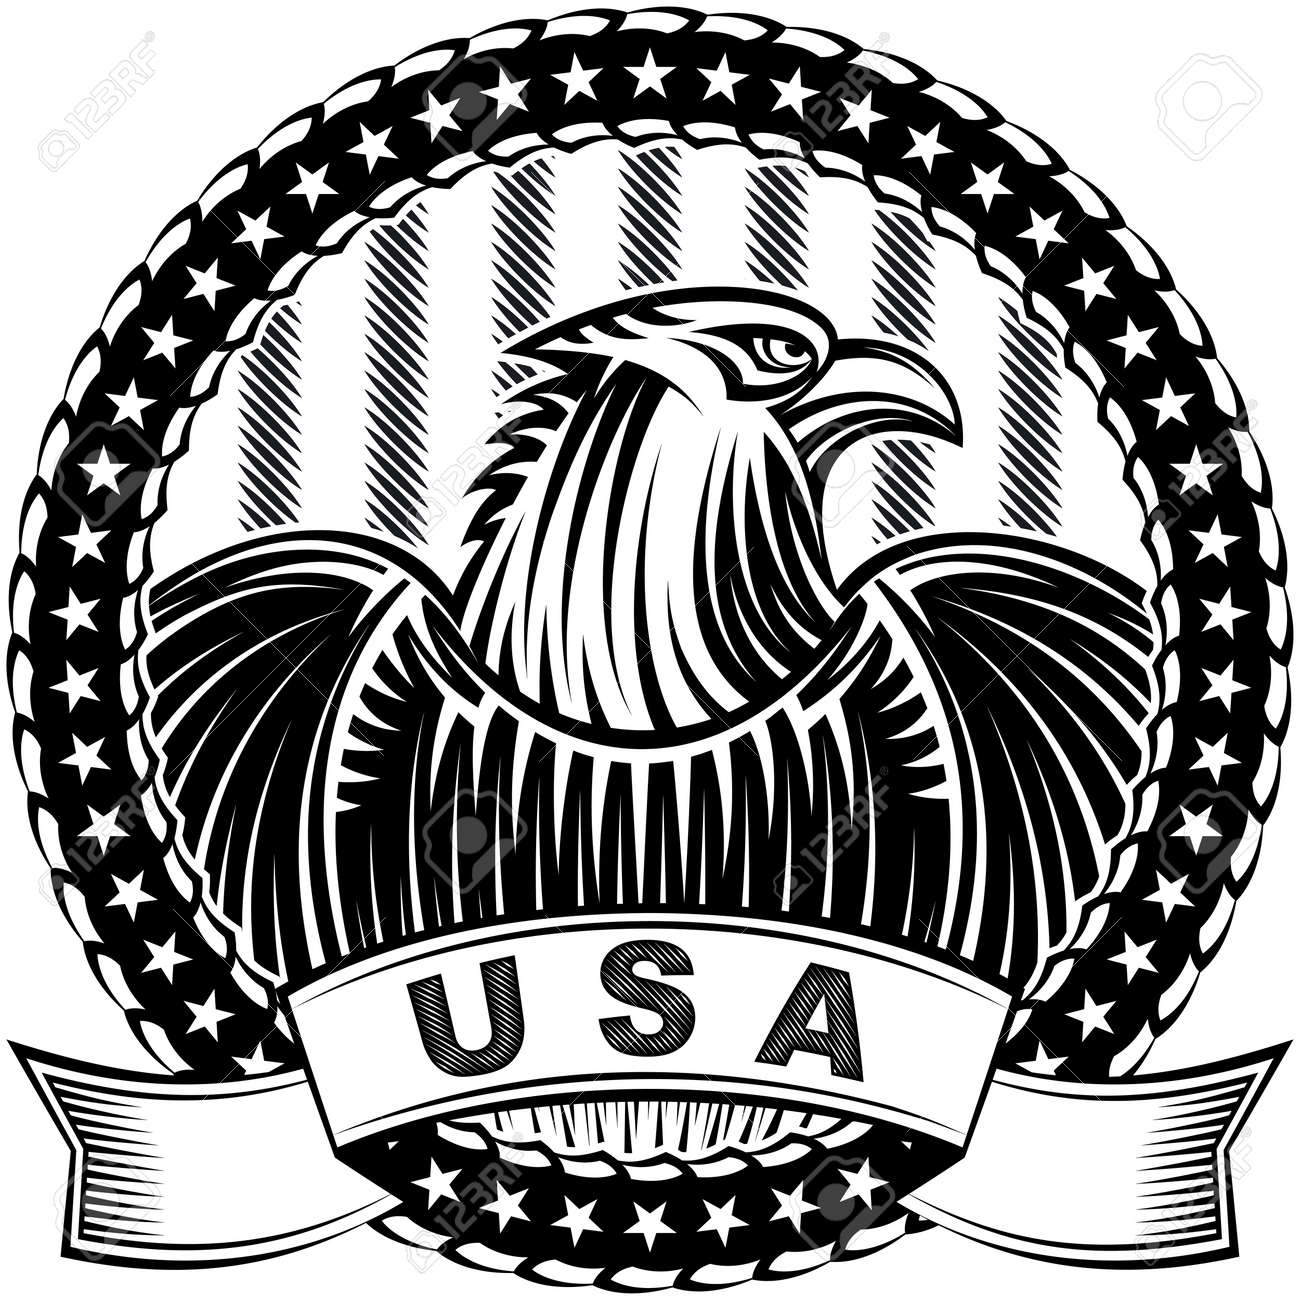 The American Eagle With Stars And Stripes As A Symbol Of Independence Day